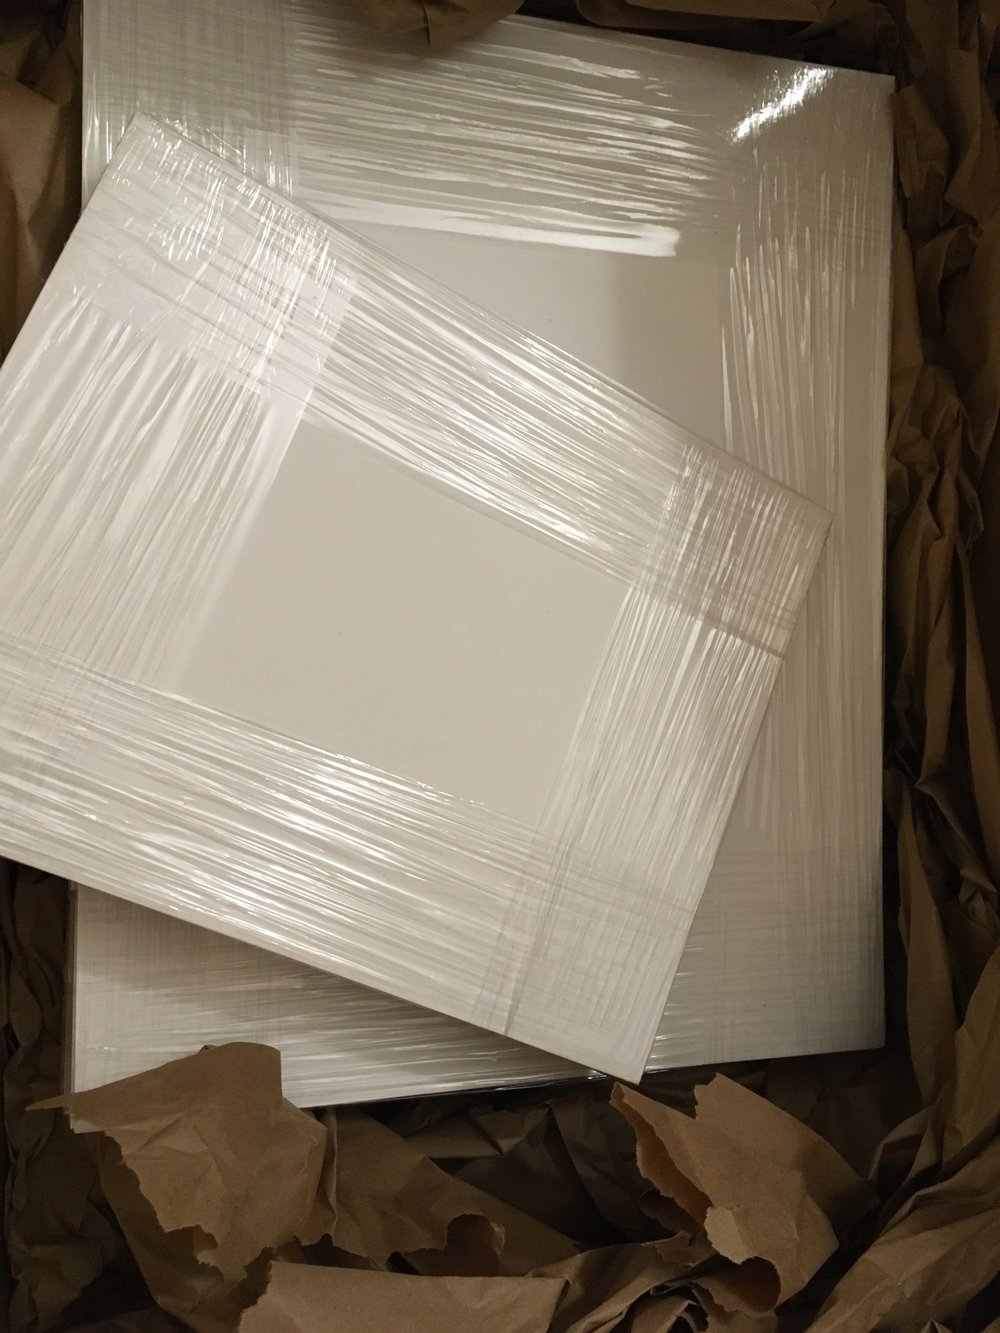 Backboards. It turns out that it's cheaper to buy pre-cut matboard for the back of a print than it is to cut them ourselves.  [Image shows stacks of 11x14 and 8x10 backboards plastic wrapped together, surrounded by brown packing paper]